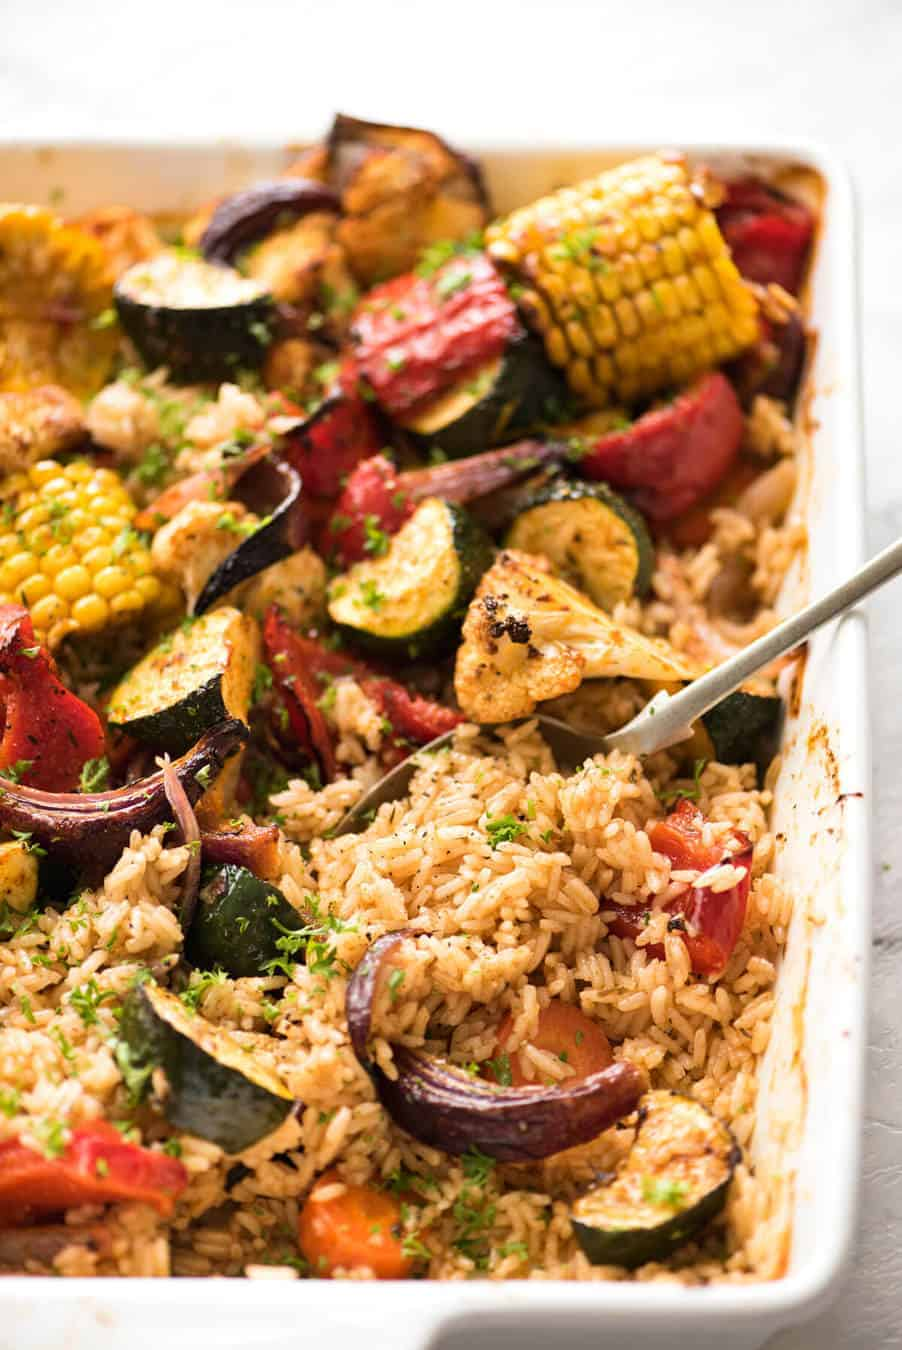 Oven Baked Rice and Vegetables - Fluffy seasoned rice and oven roasted vegetables, all made in ONE pan! Fabulous meal or side, super quick and easy to prep. recipetineats.com